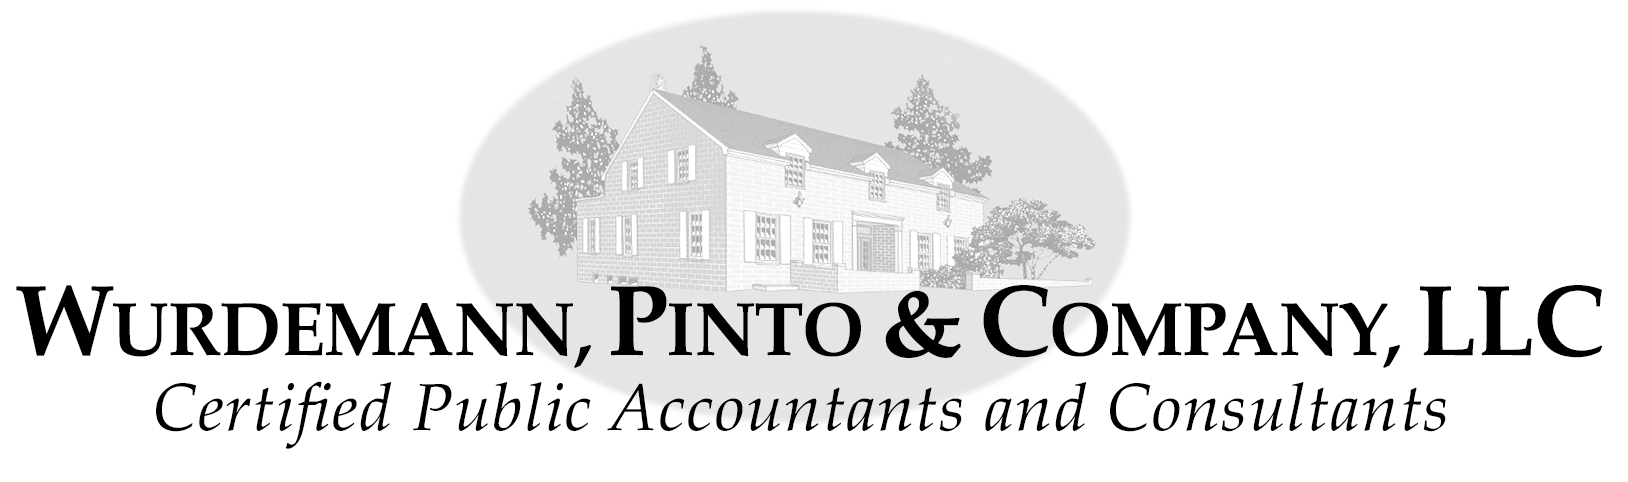 Hackensack, NJ Accounting Firm | Bankruptcy | Wurdemann, Pinto & Co. LLC